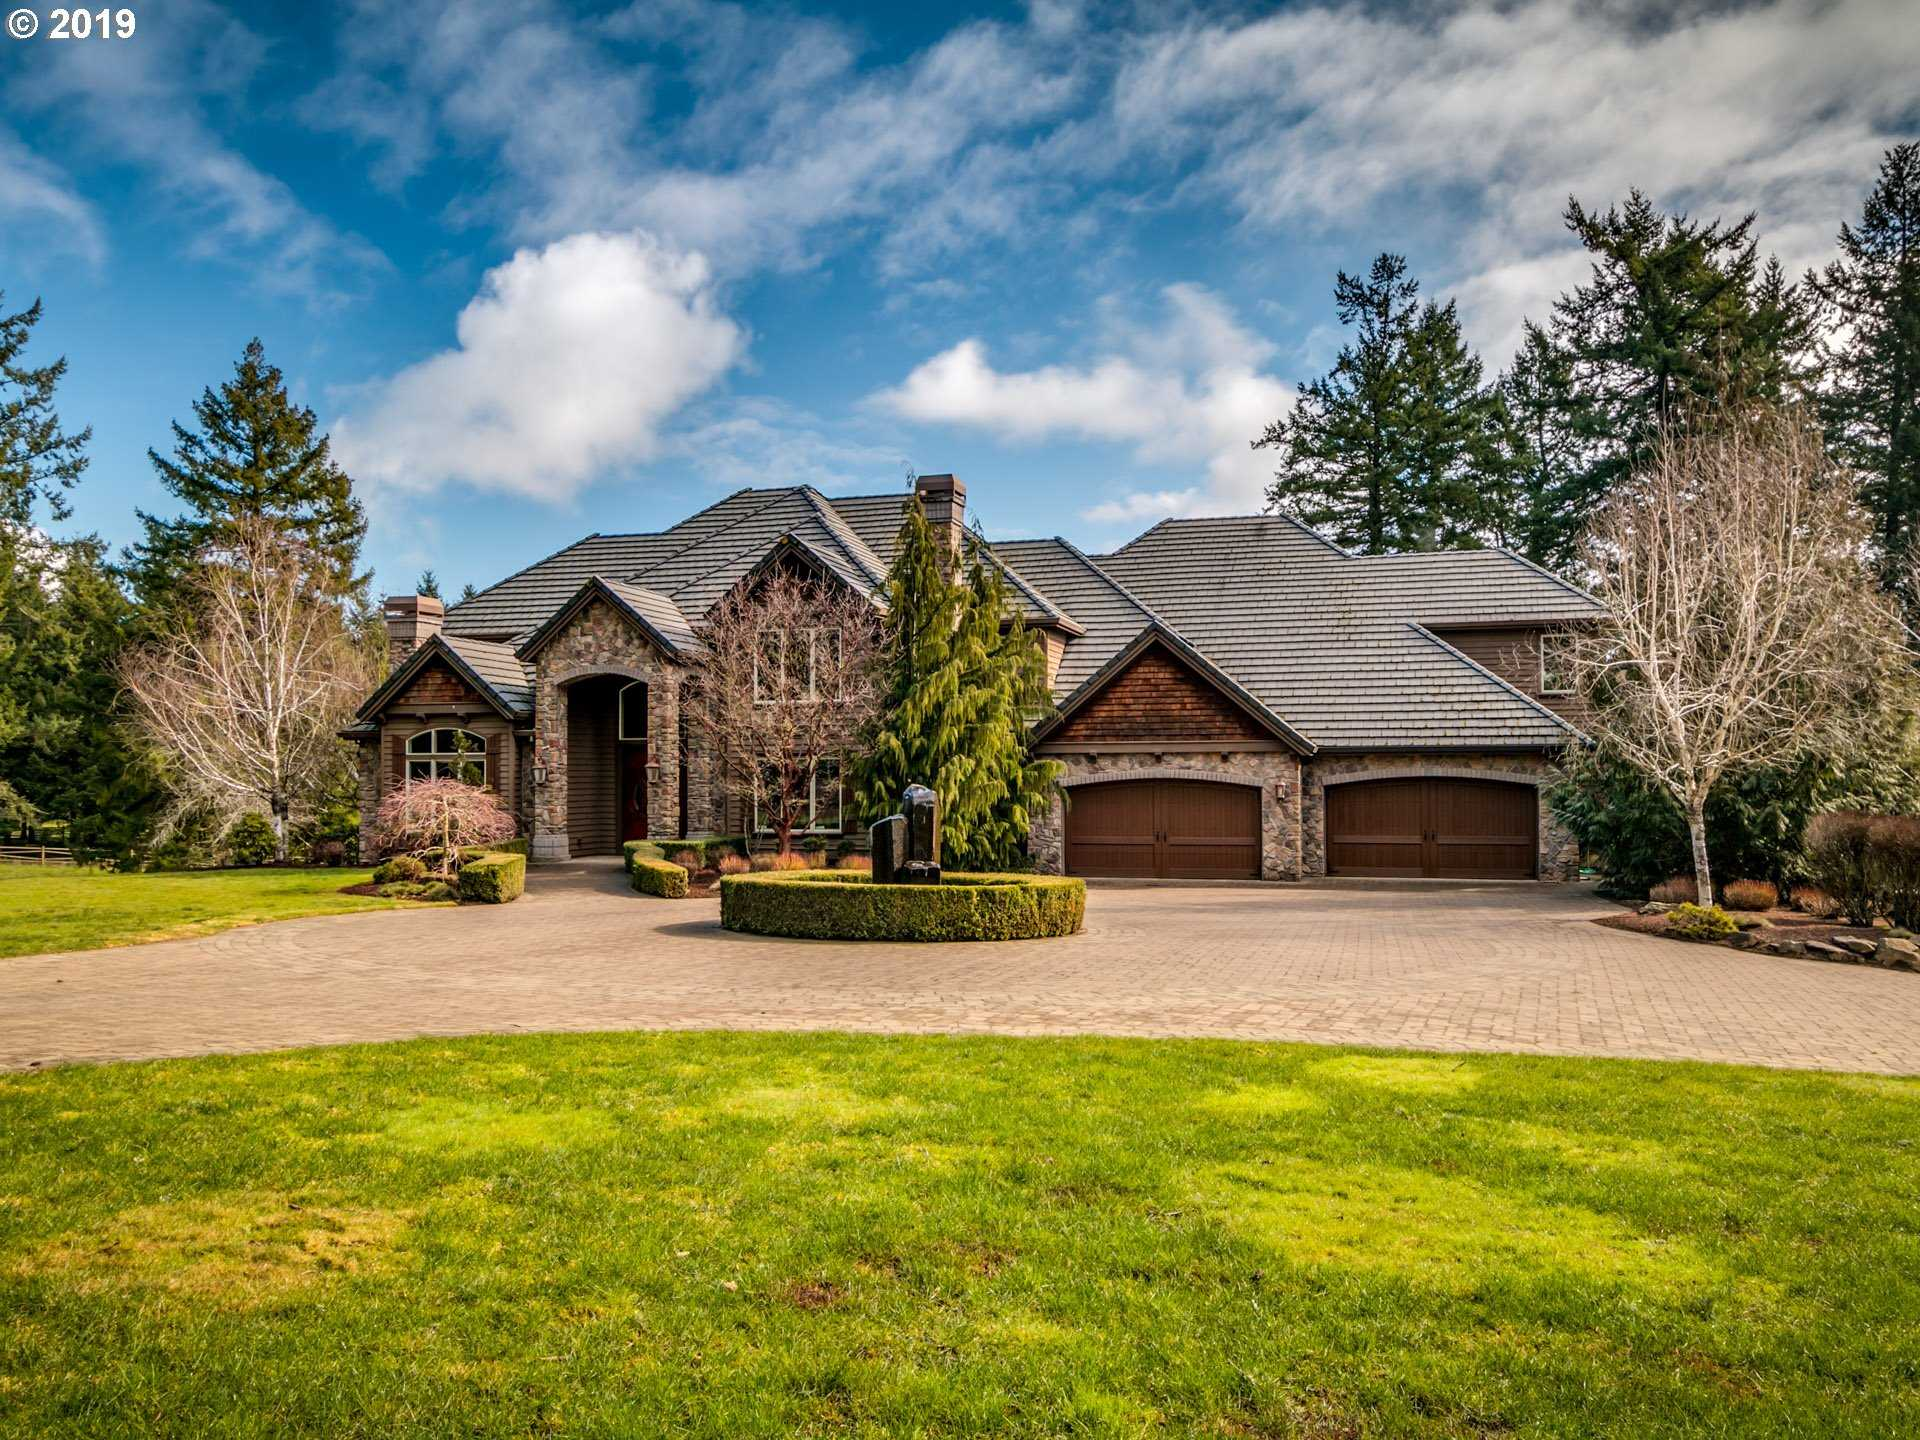 $1,990,000 - 6Br/6Ba -  for Sale in West Linn